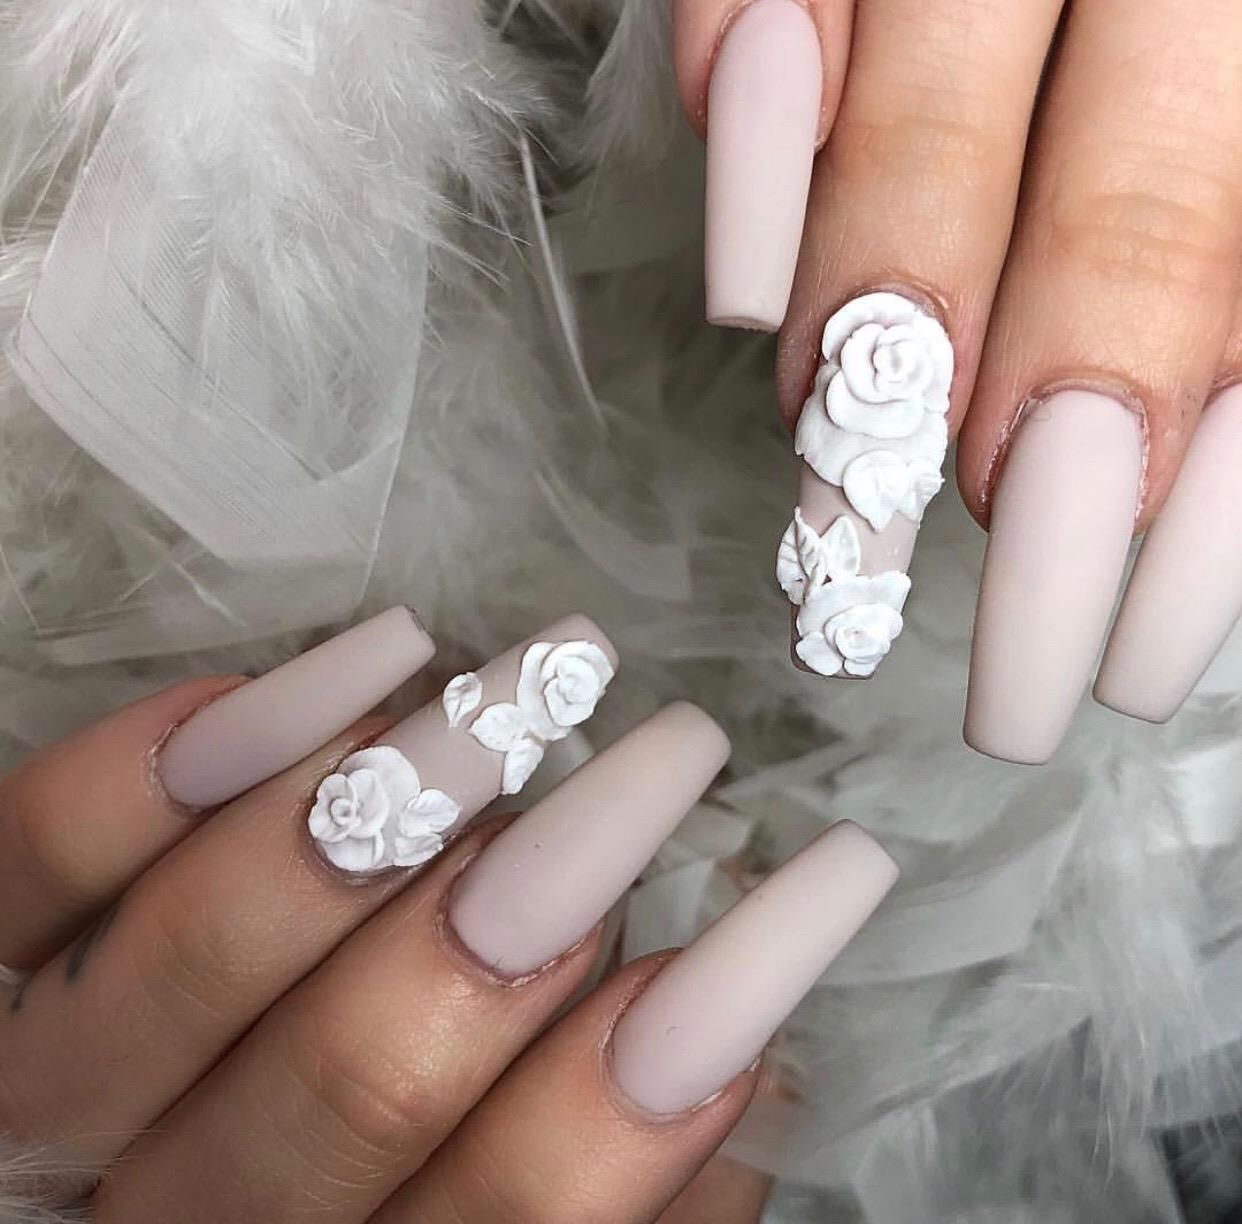 Acrylic Gel Fill 30 3d Flowers Start At 15 Manicure And Pedicure Manicure Pedicure Nail Art